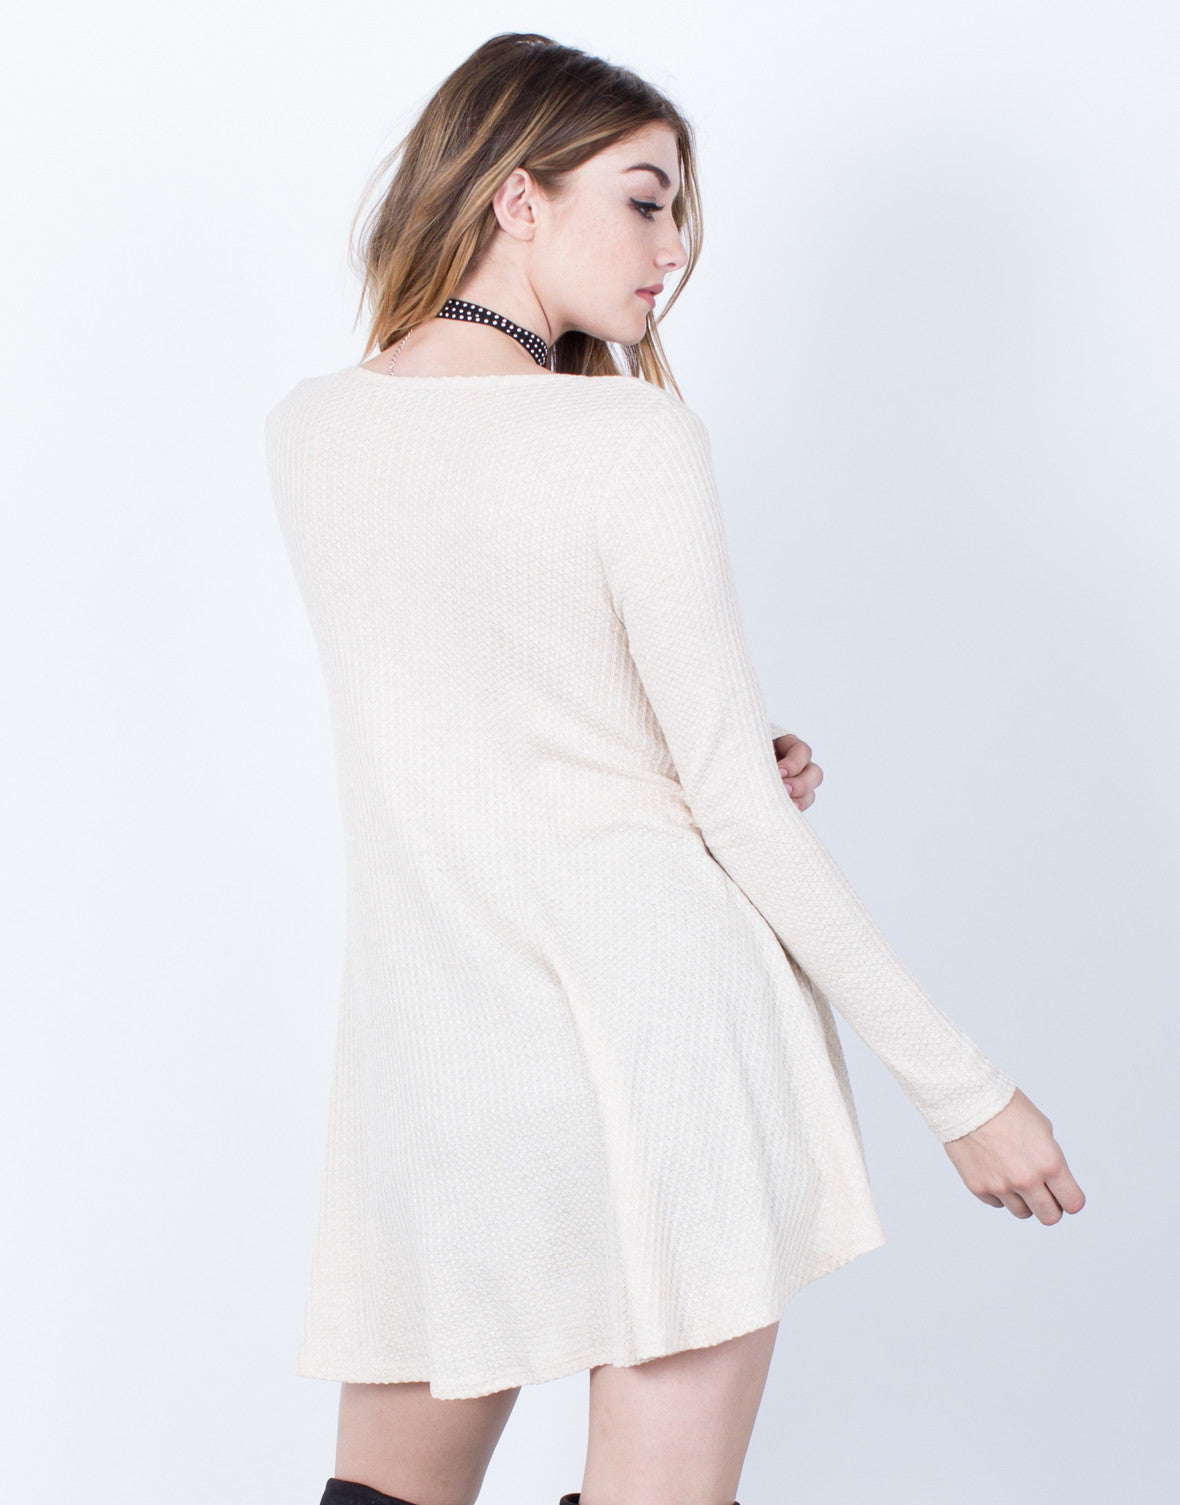 Back View of Easy Breezy Tunic Top